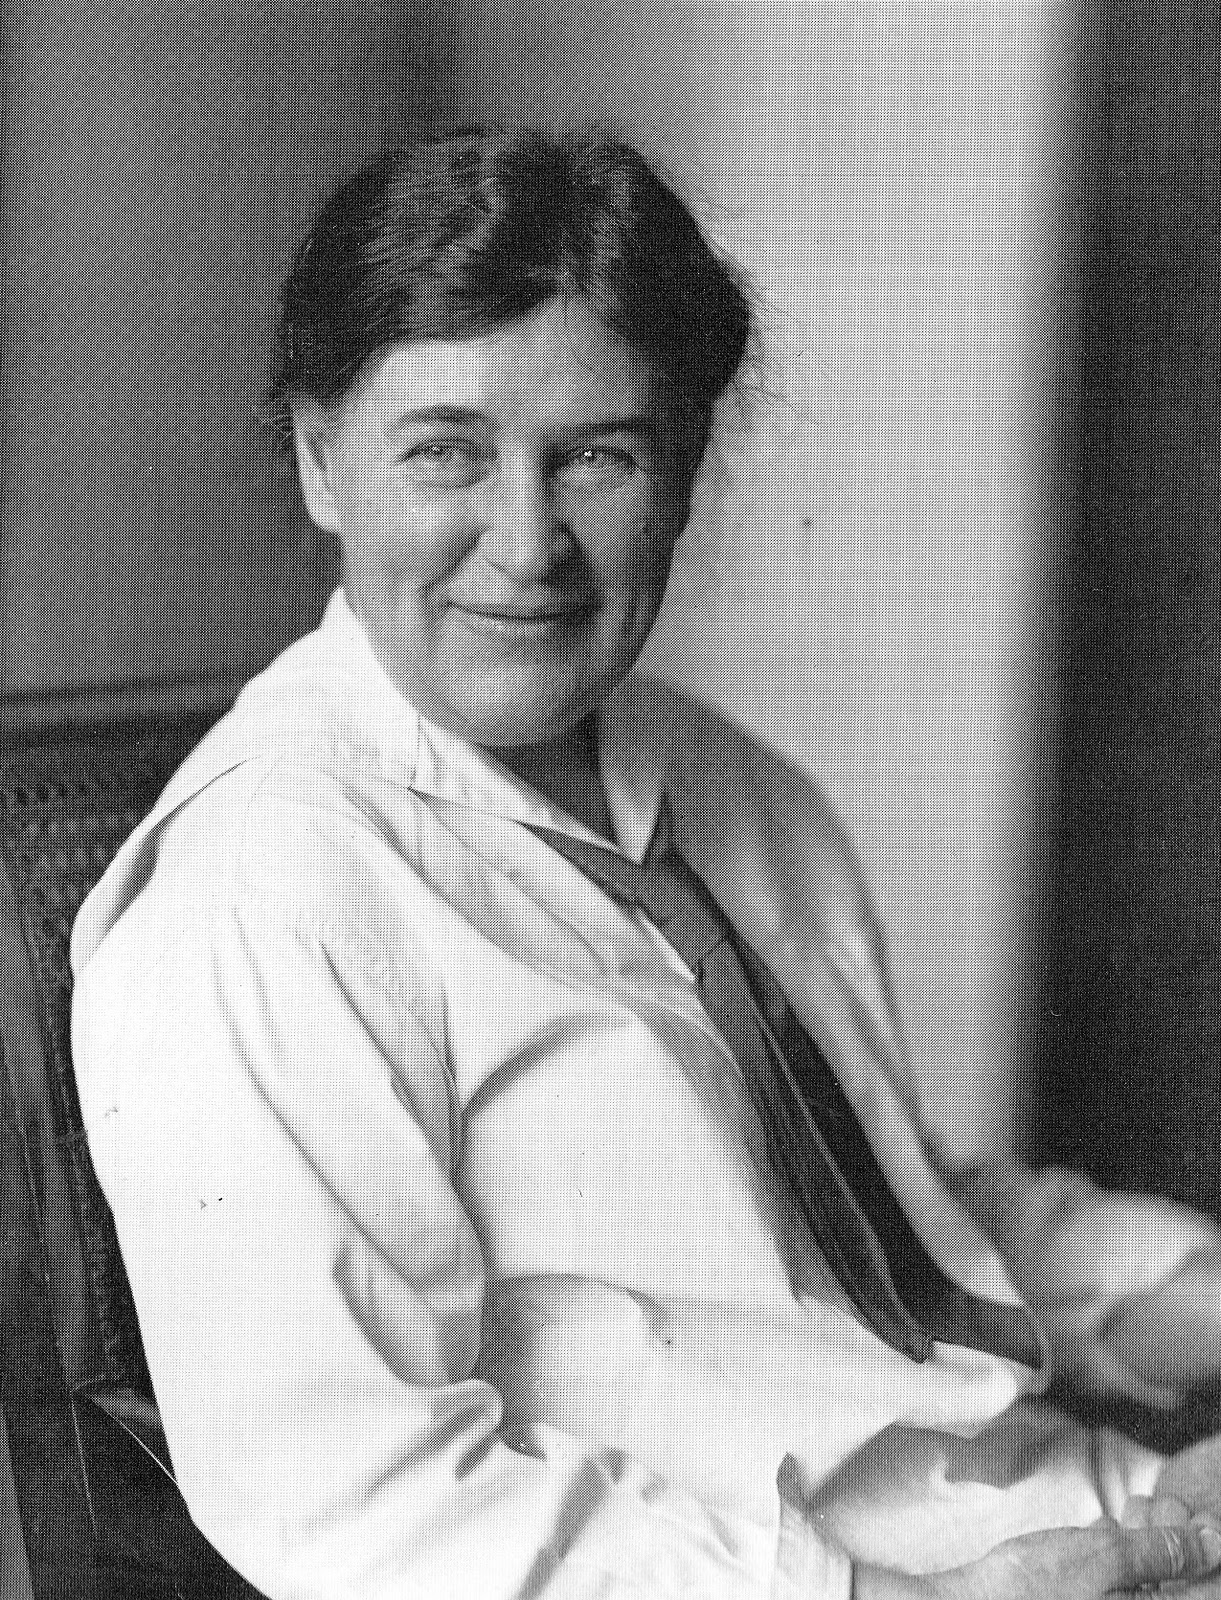 analysis of pauls case by willa cather This is a quick summary of paul's case by willa cather this channel discusses and reviews books, novels, and short stories through drawingpoorly.